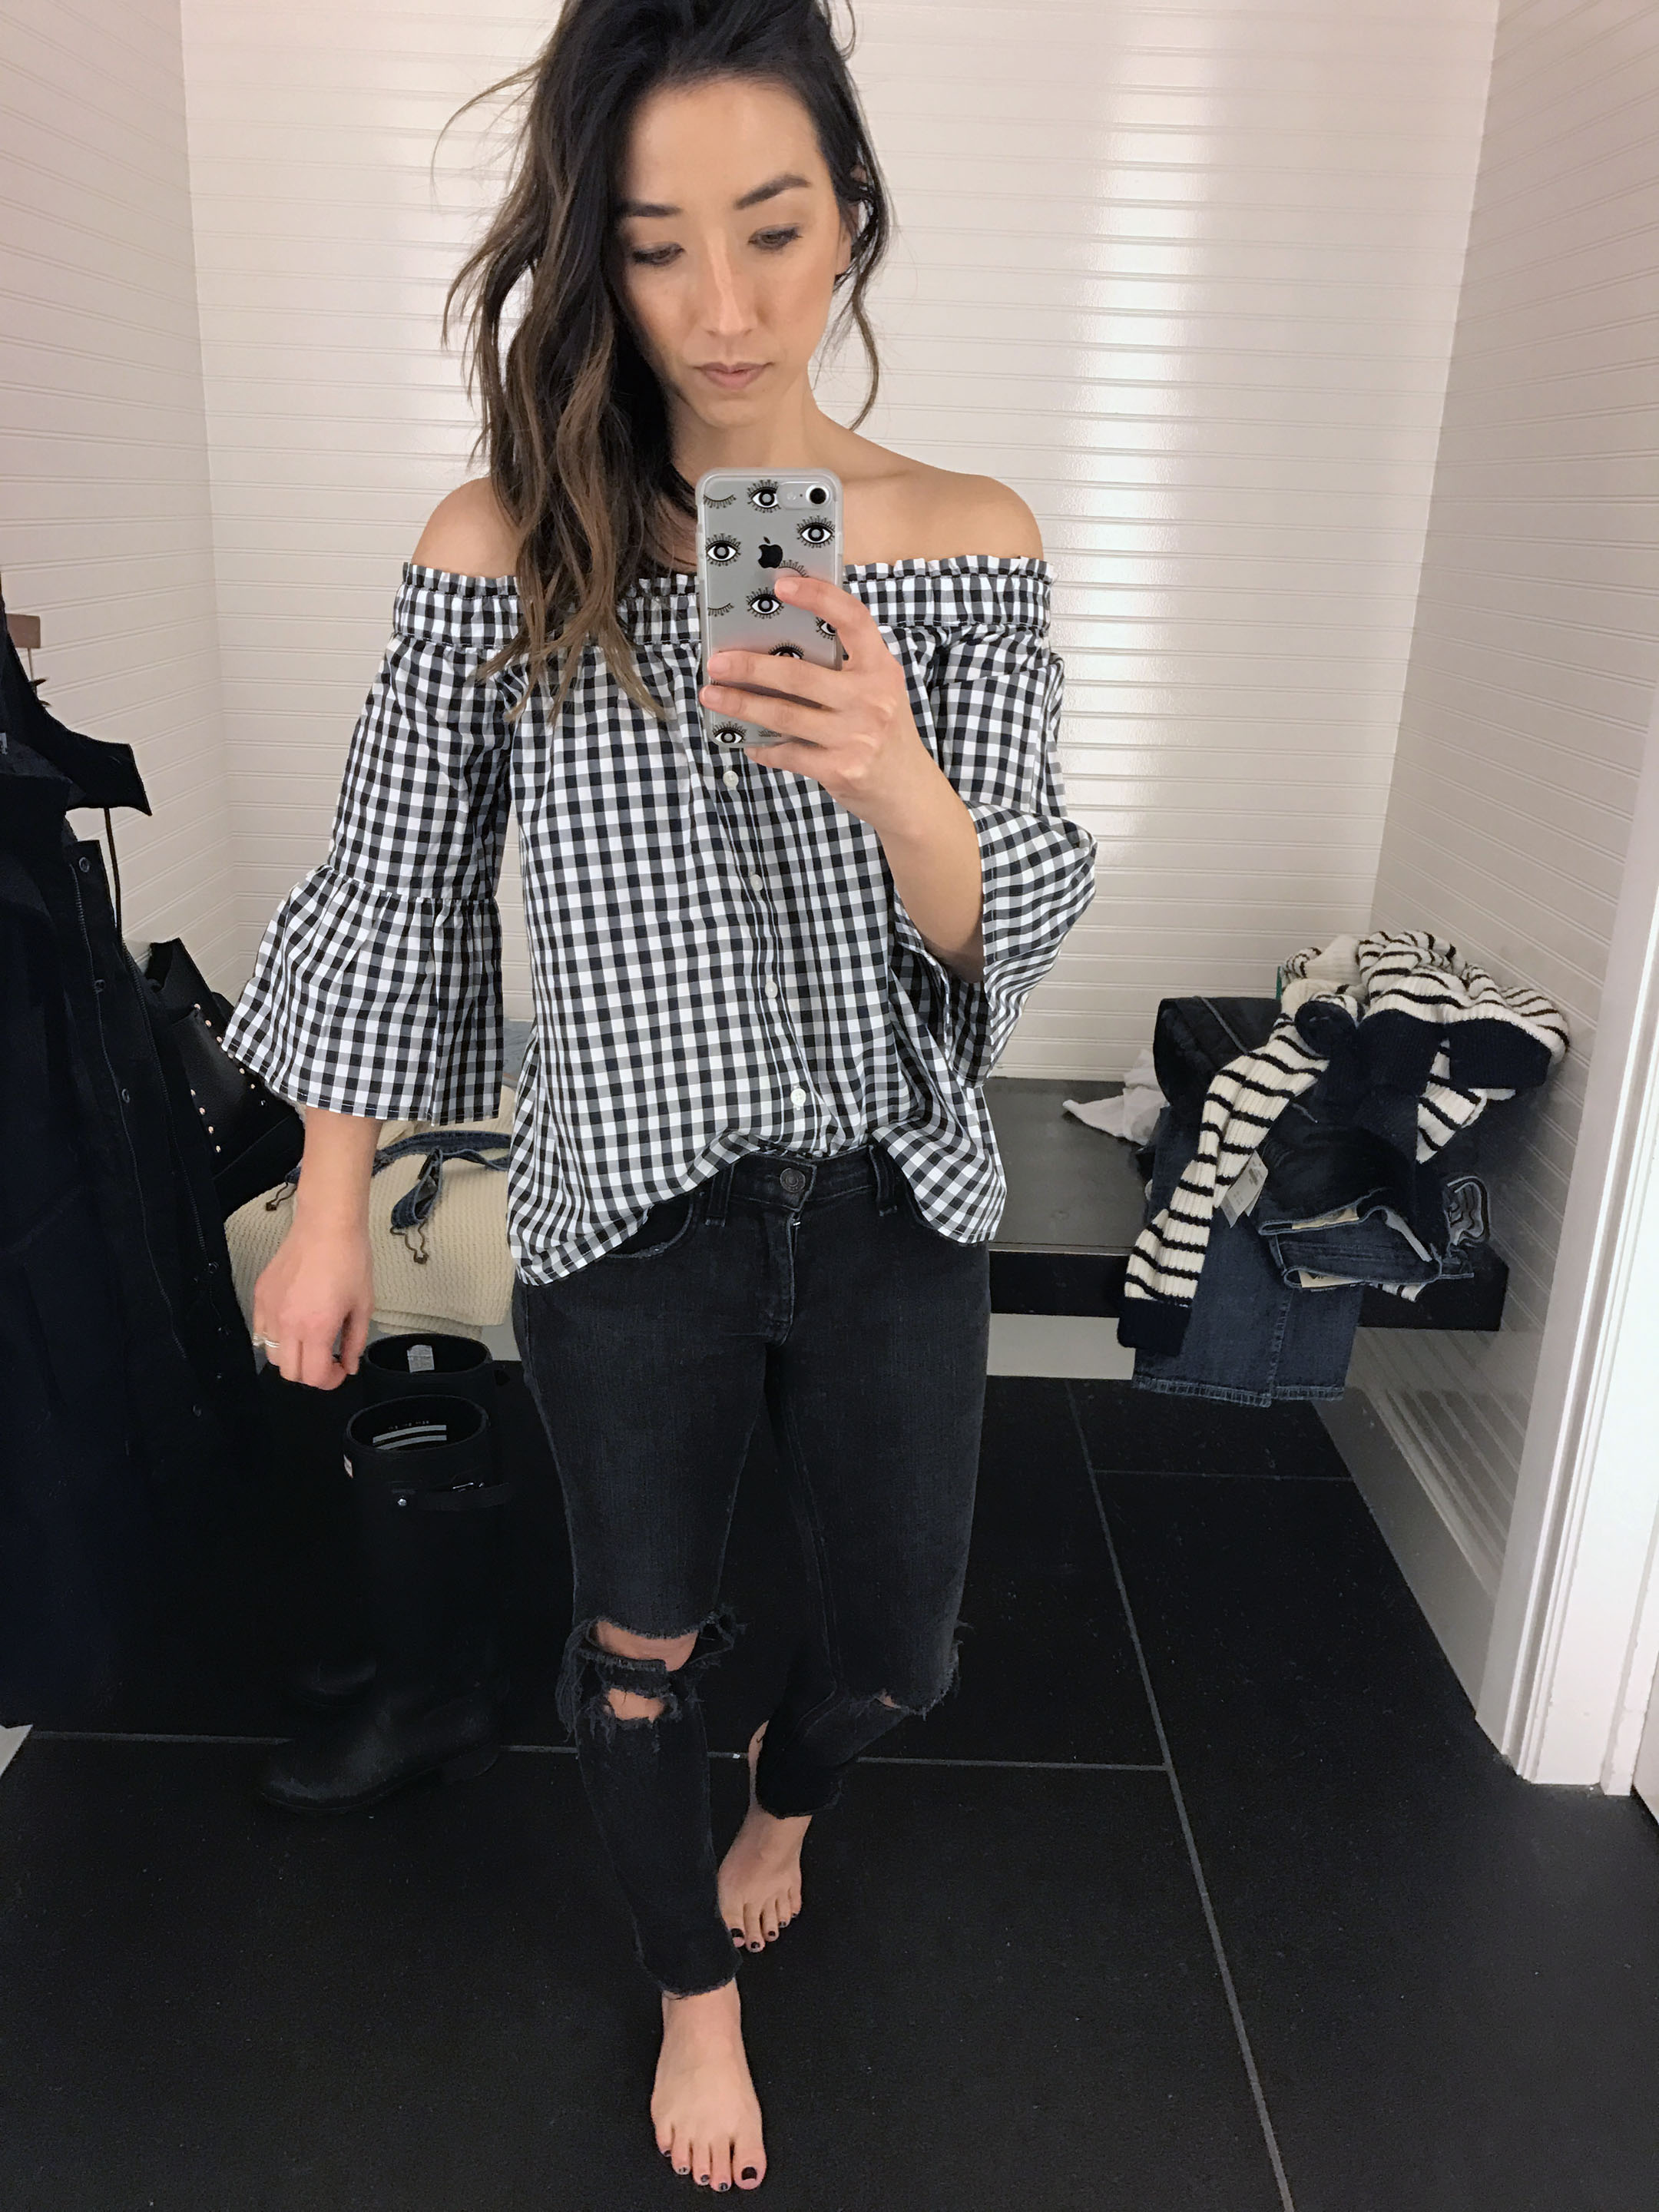 abercrombie & Fitch gingham top 2